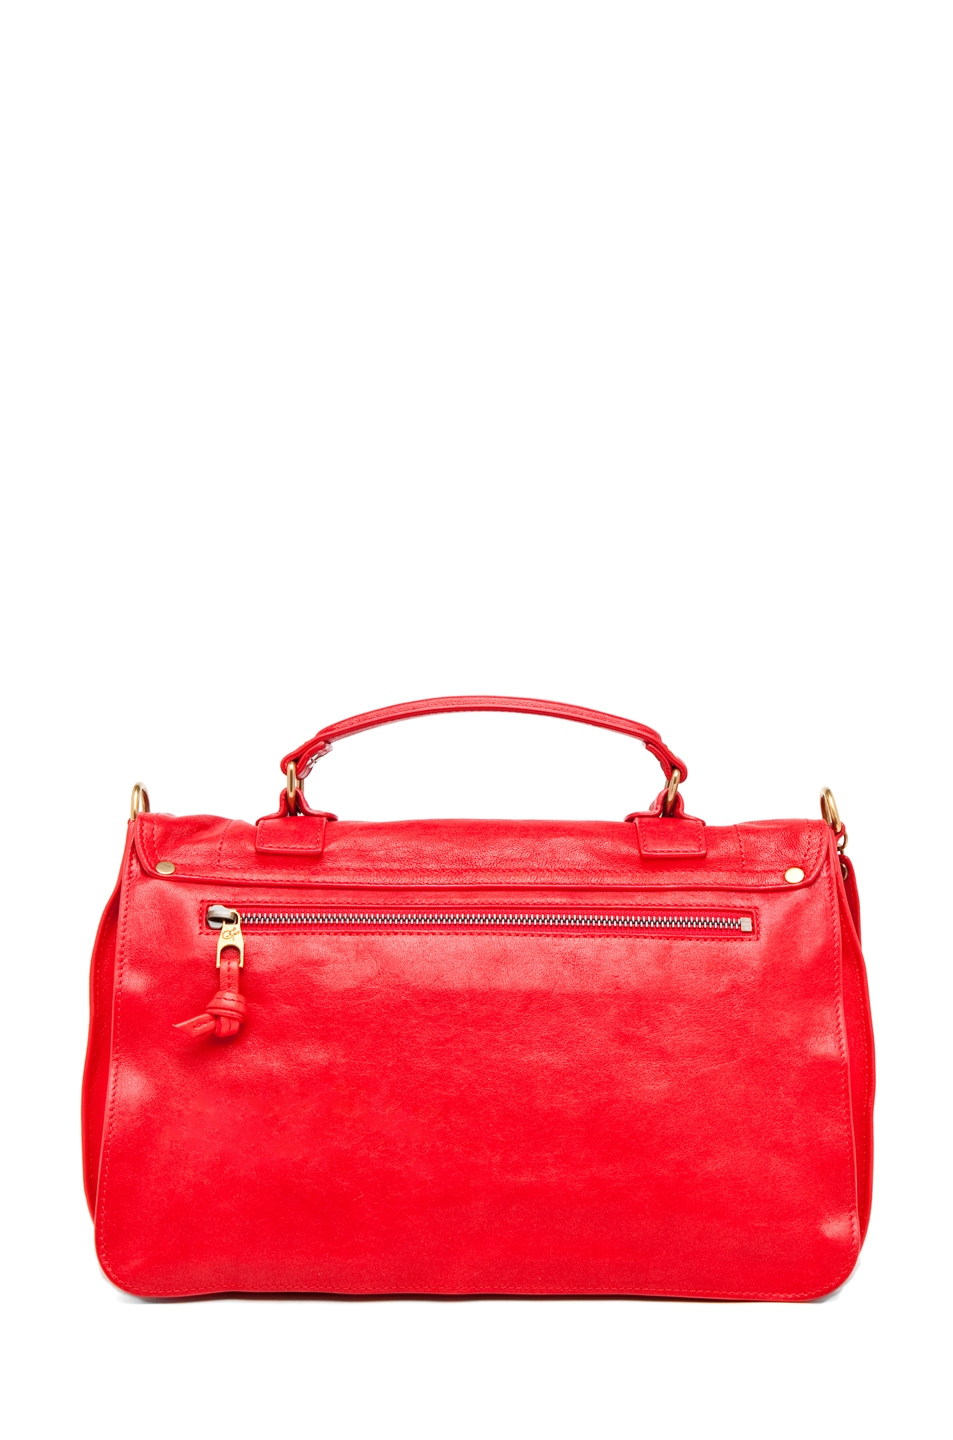 Image 2 of Proenza Schouler PS1 Medium in Bright Red